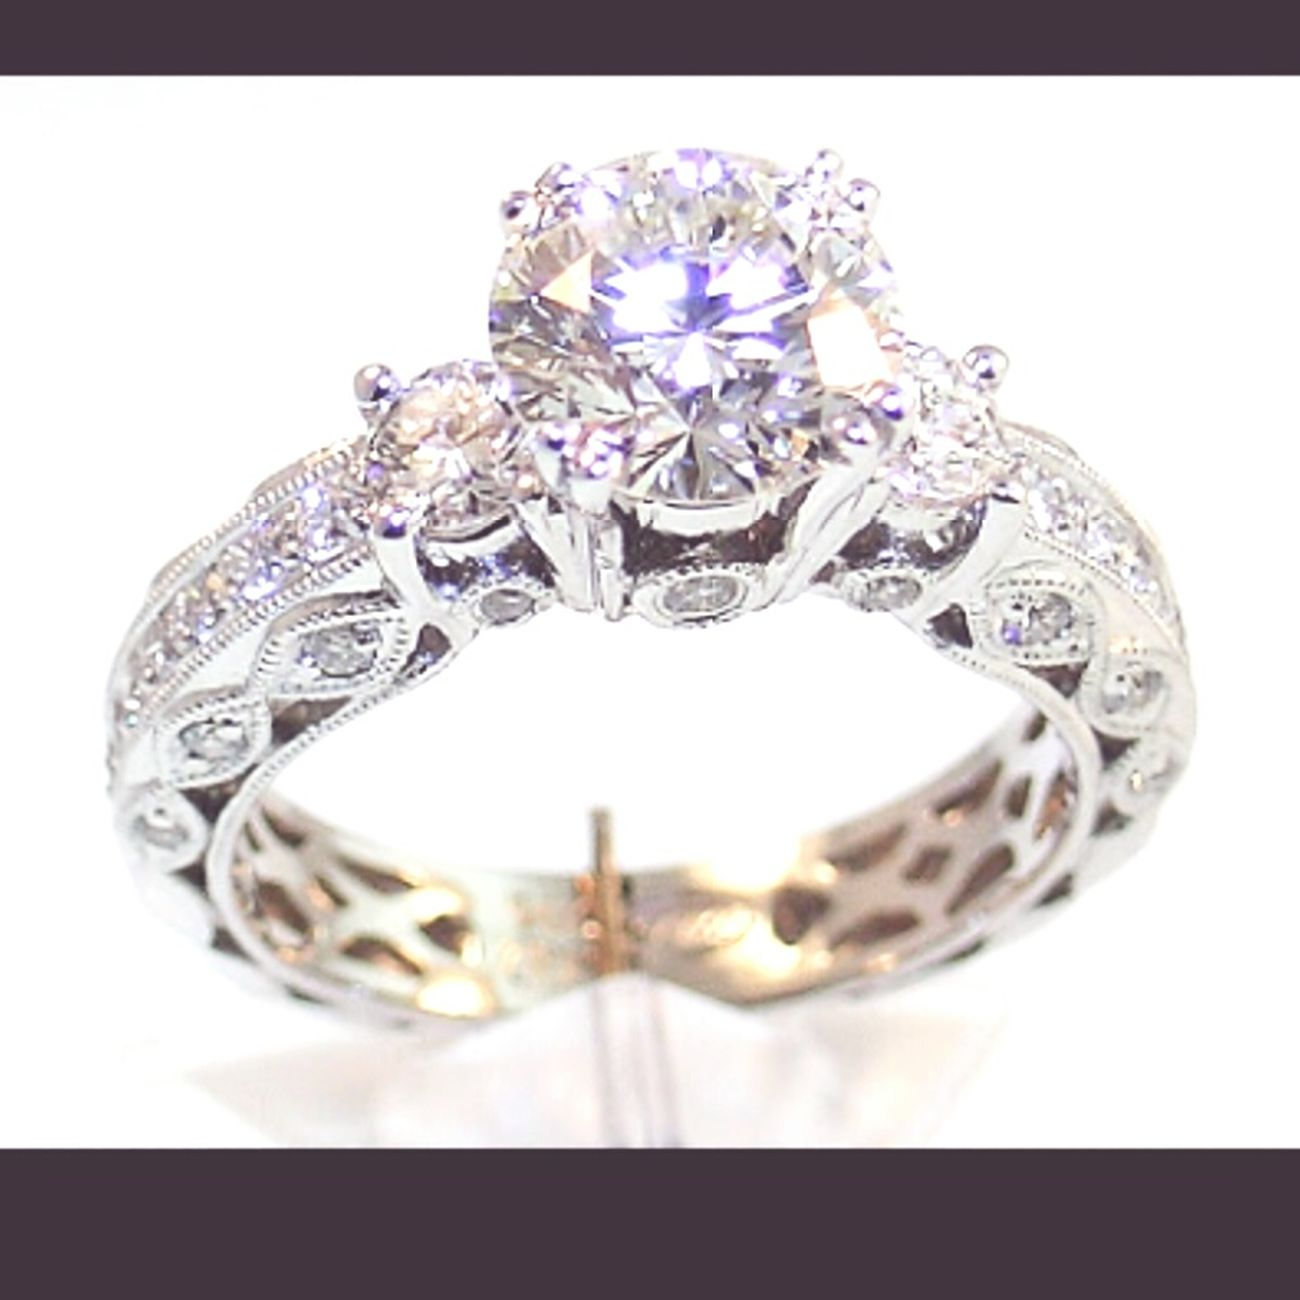 Diamonds Rings@rings Stunning Look My Dream Diamond Ring :*:*:*:*